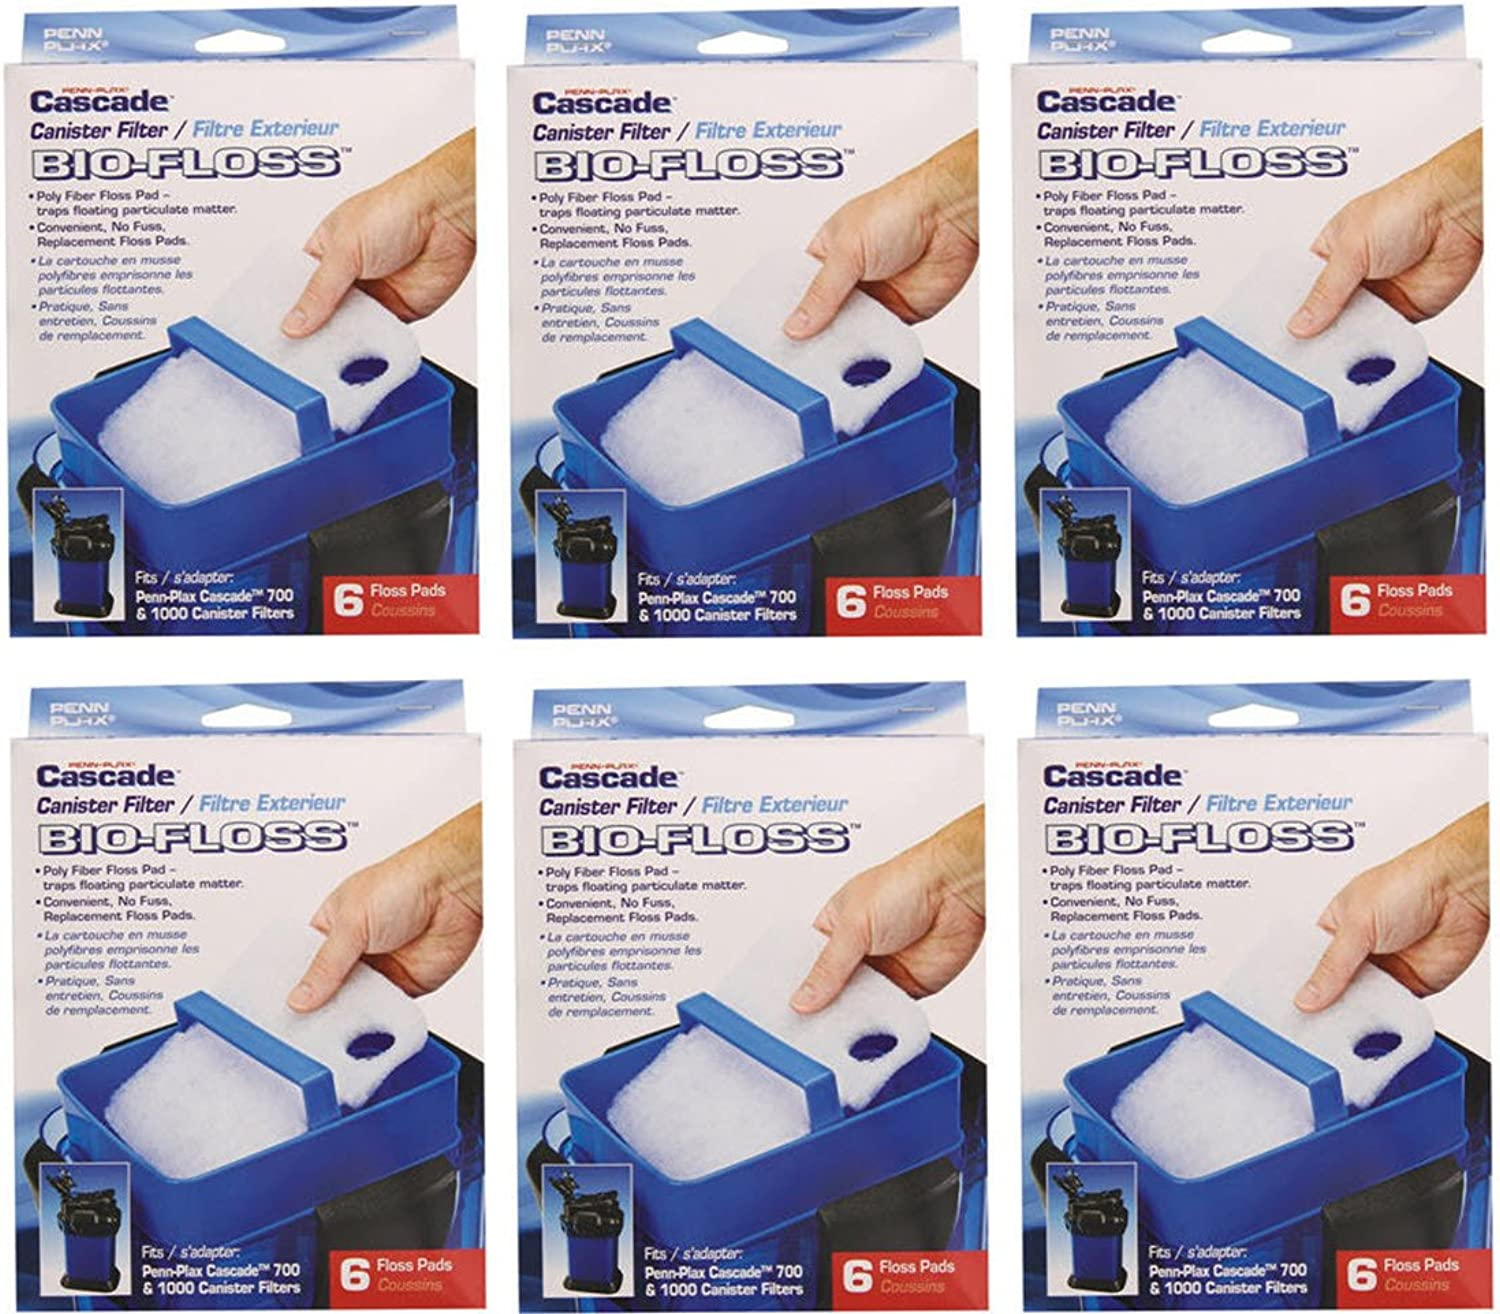 Penn Plax BioFloss Filter Media for Cascade 700 and 1000 Canister Aquarium Filter Pumps, 6Boxes 36Cartridges